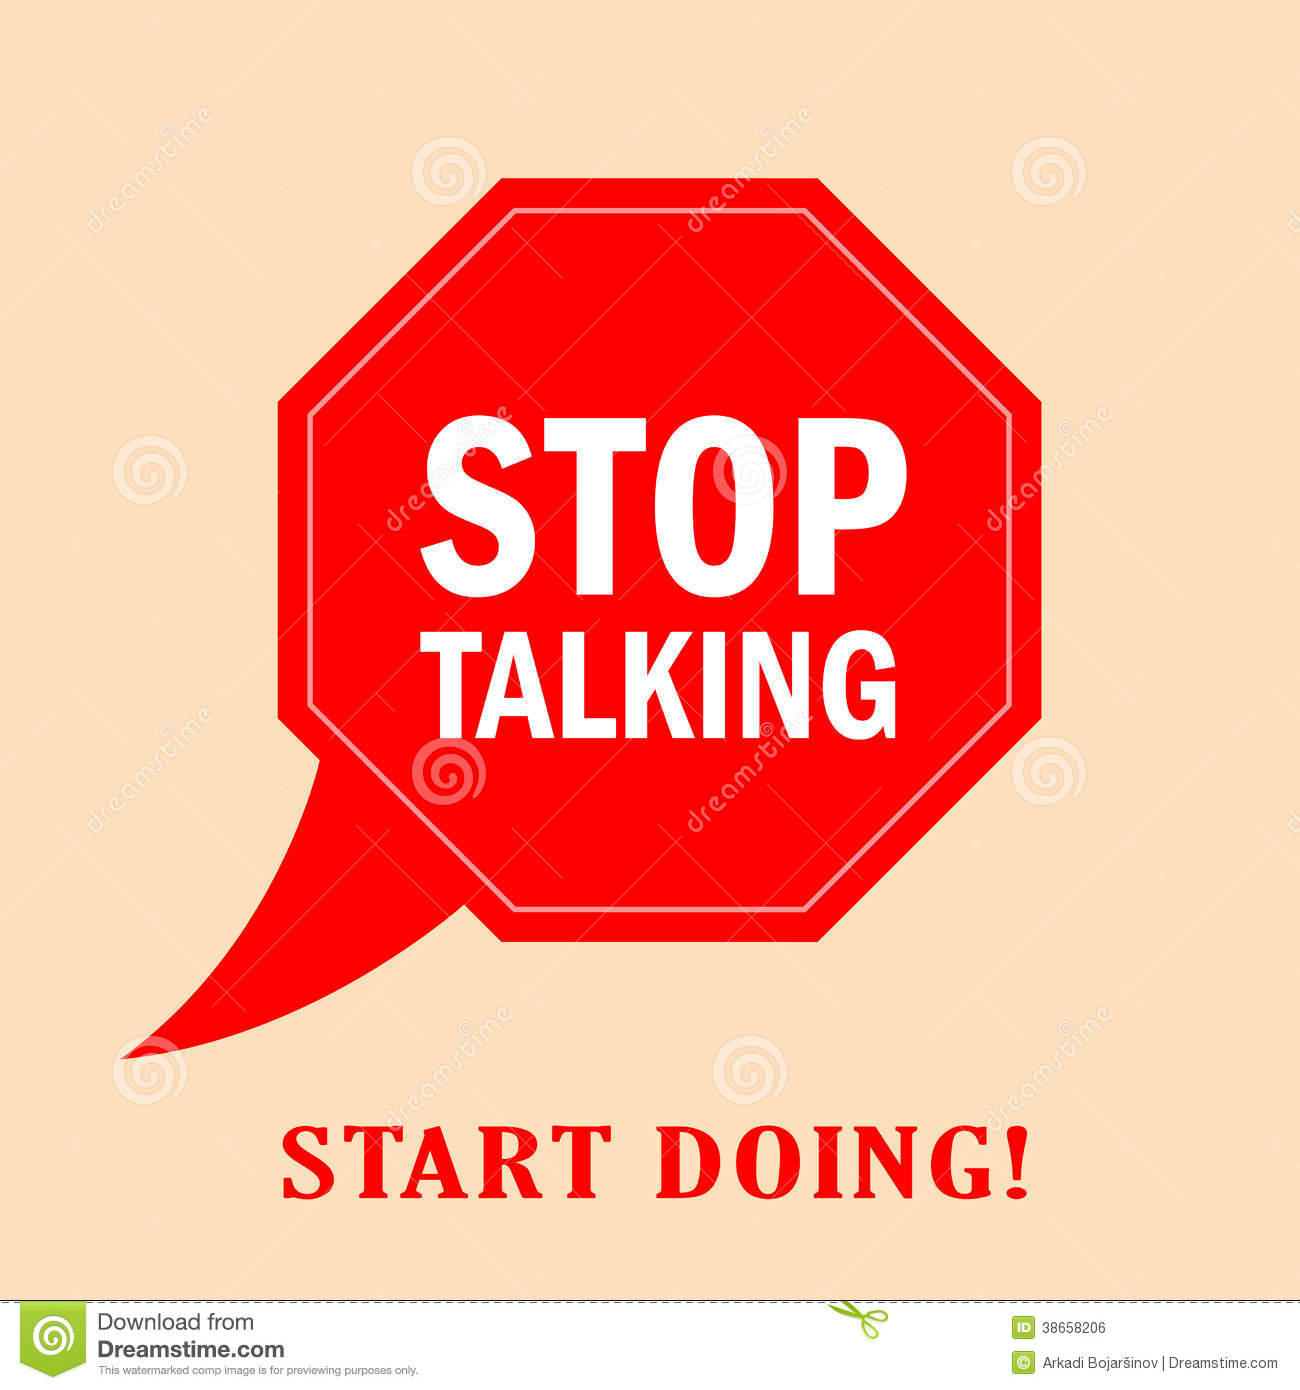 Stop Talking Vector Poster Royalty Free Stock Image   Image  38658206